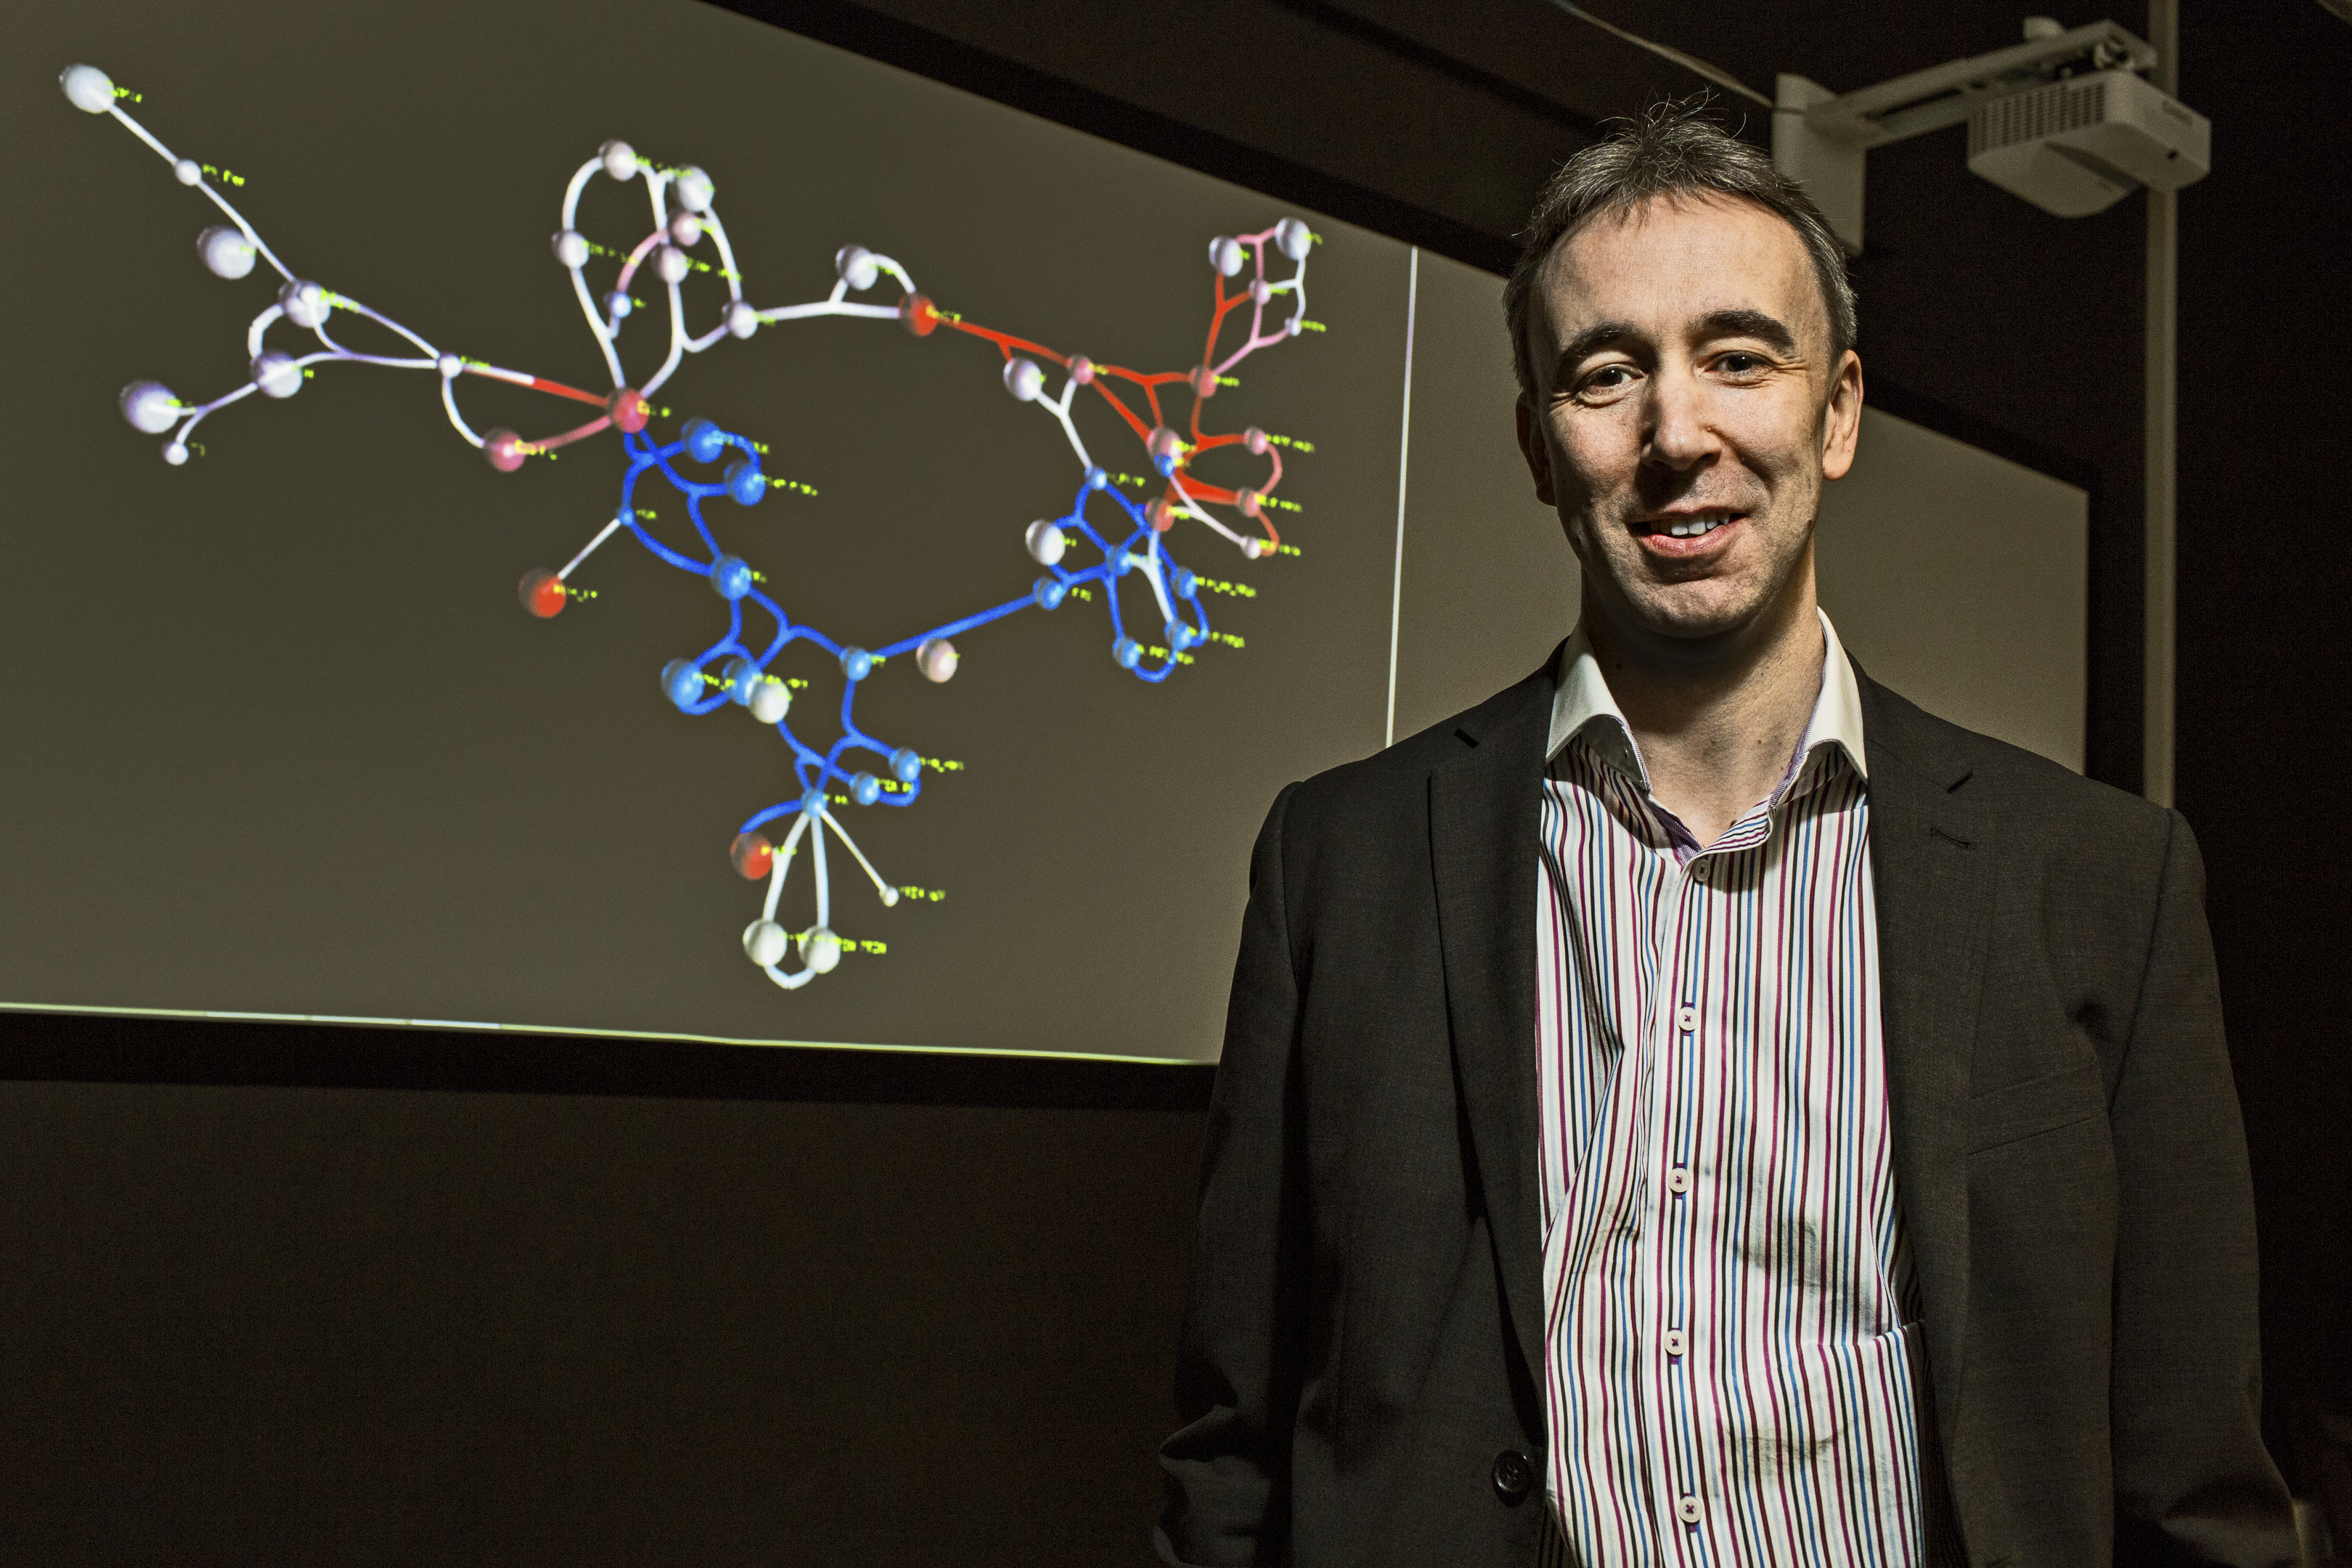 Professor Jim Bown believes the SiViT software could lead to cancer breakthroughs.